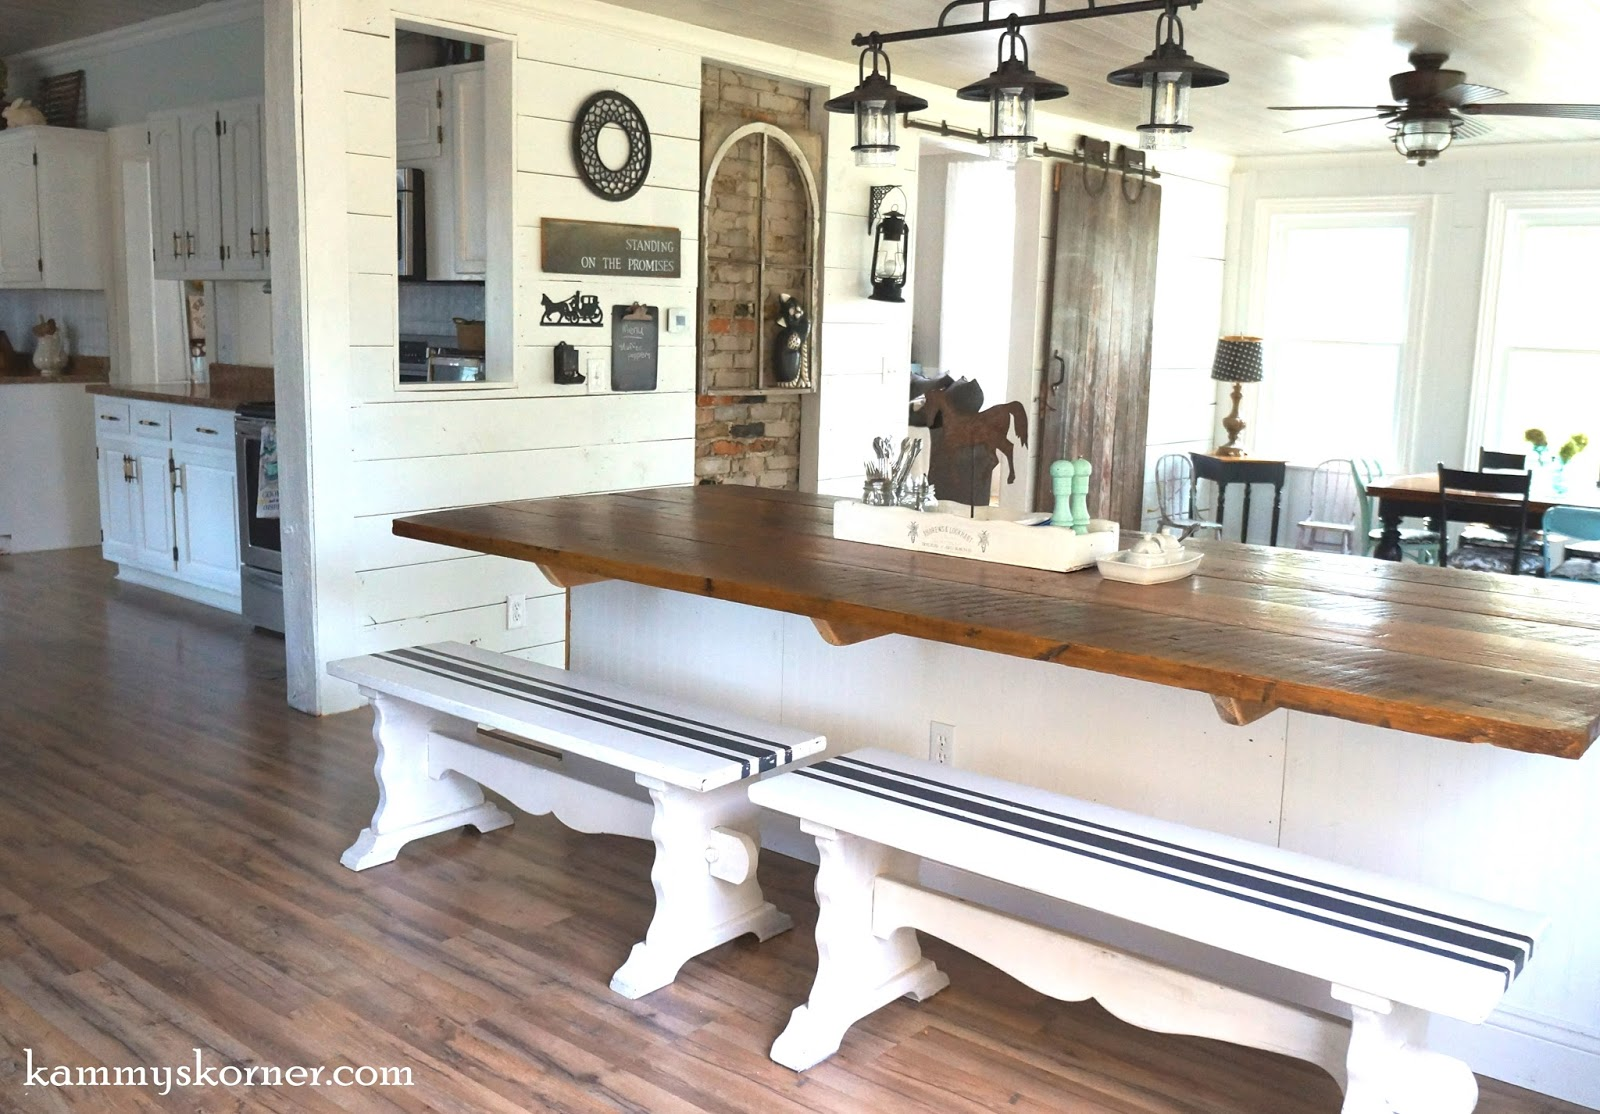 Kammy\'s Korner: Not Your Average Barn Wood Table - It\'s a BARBLE!